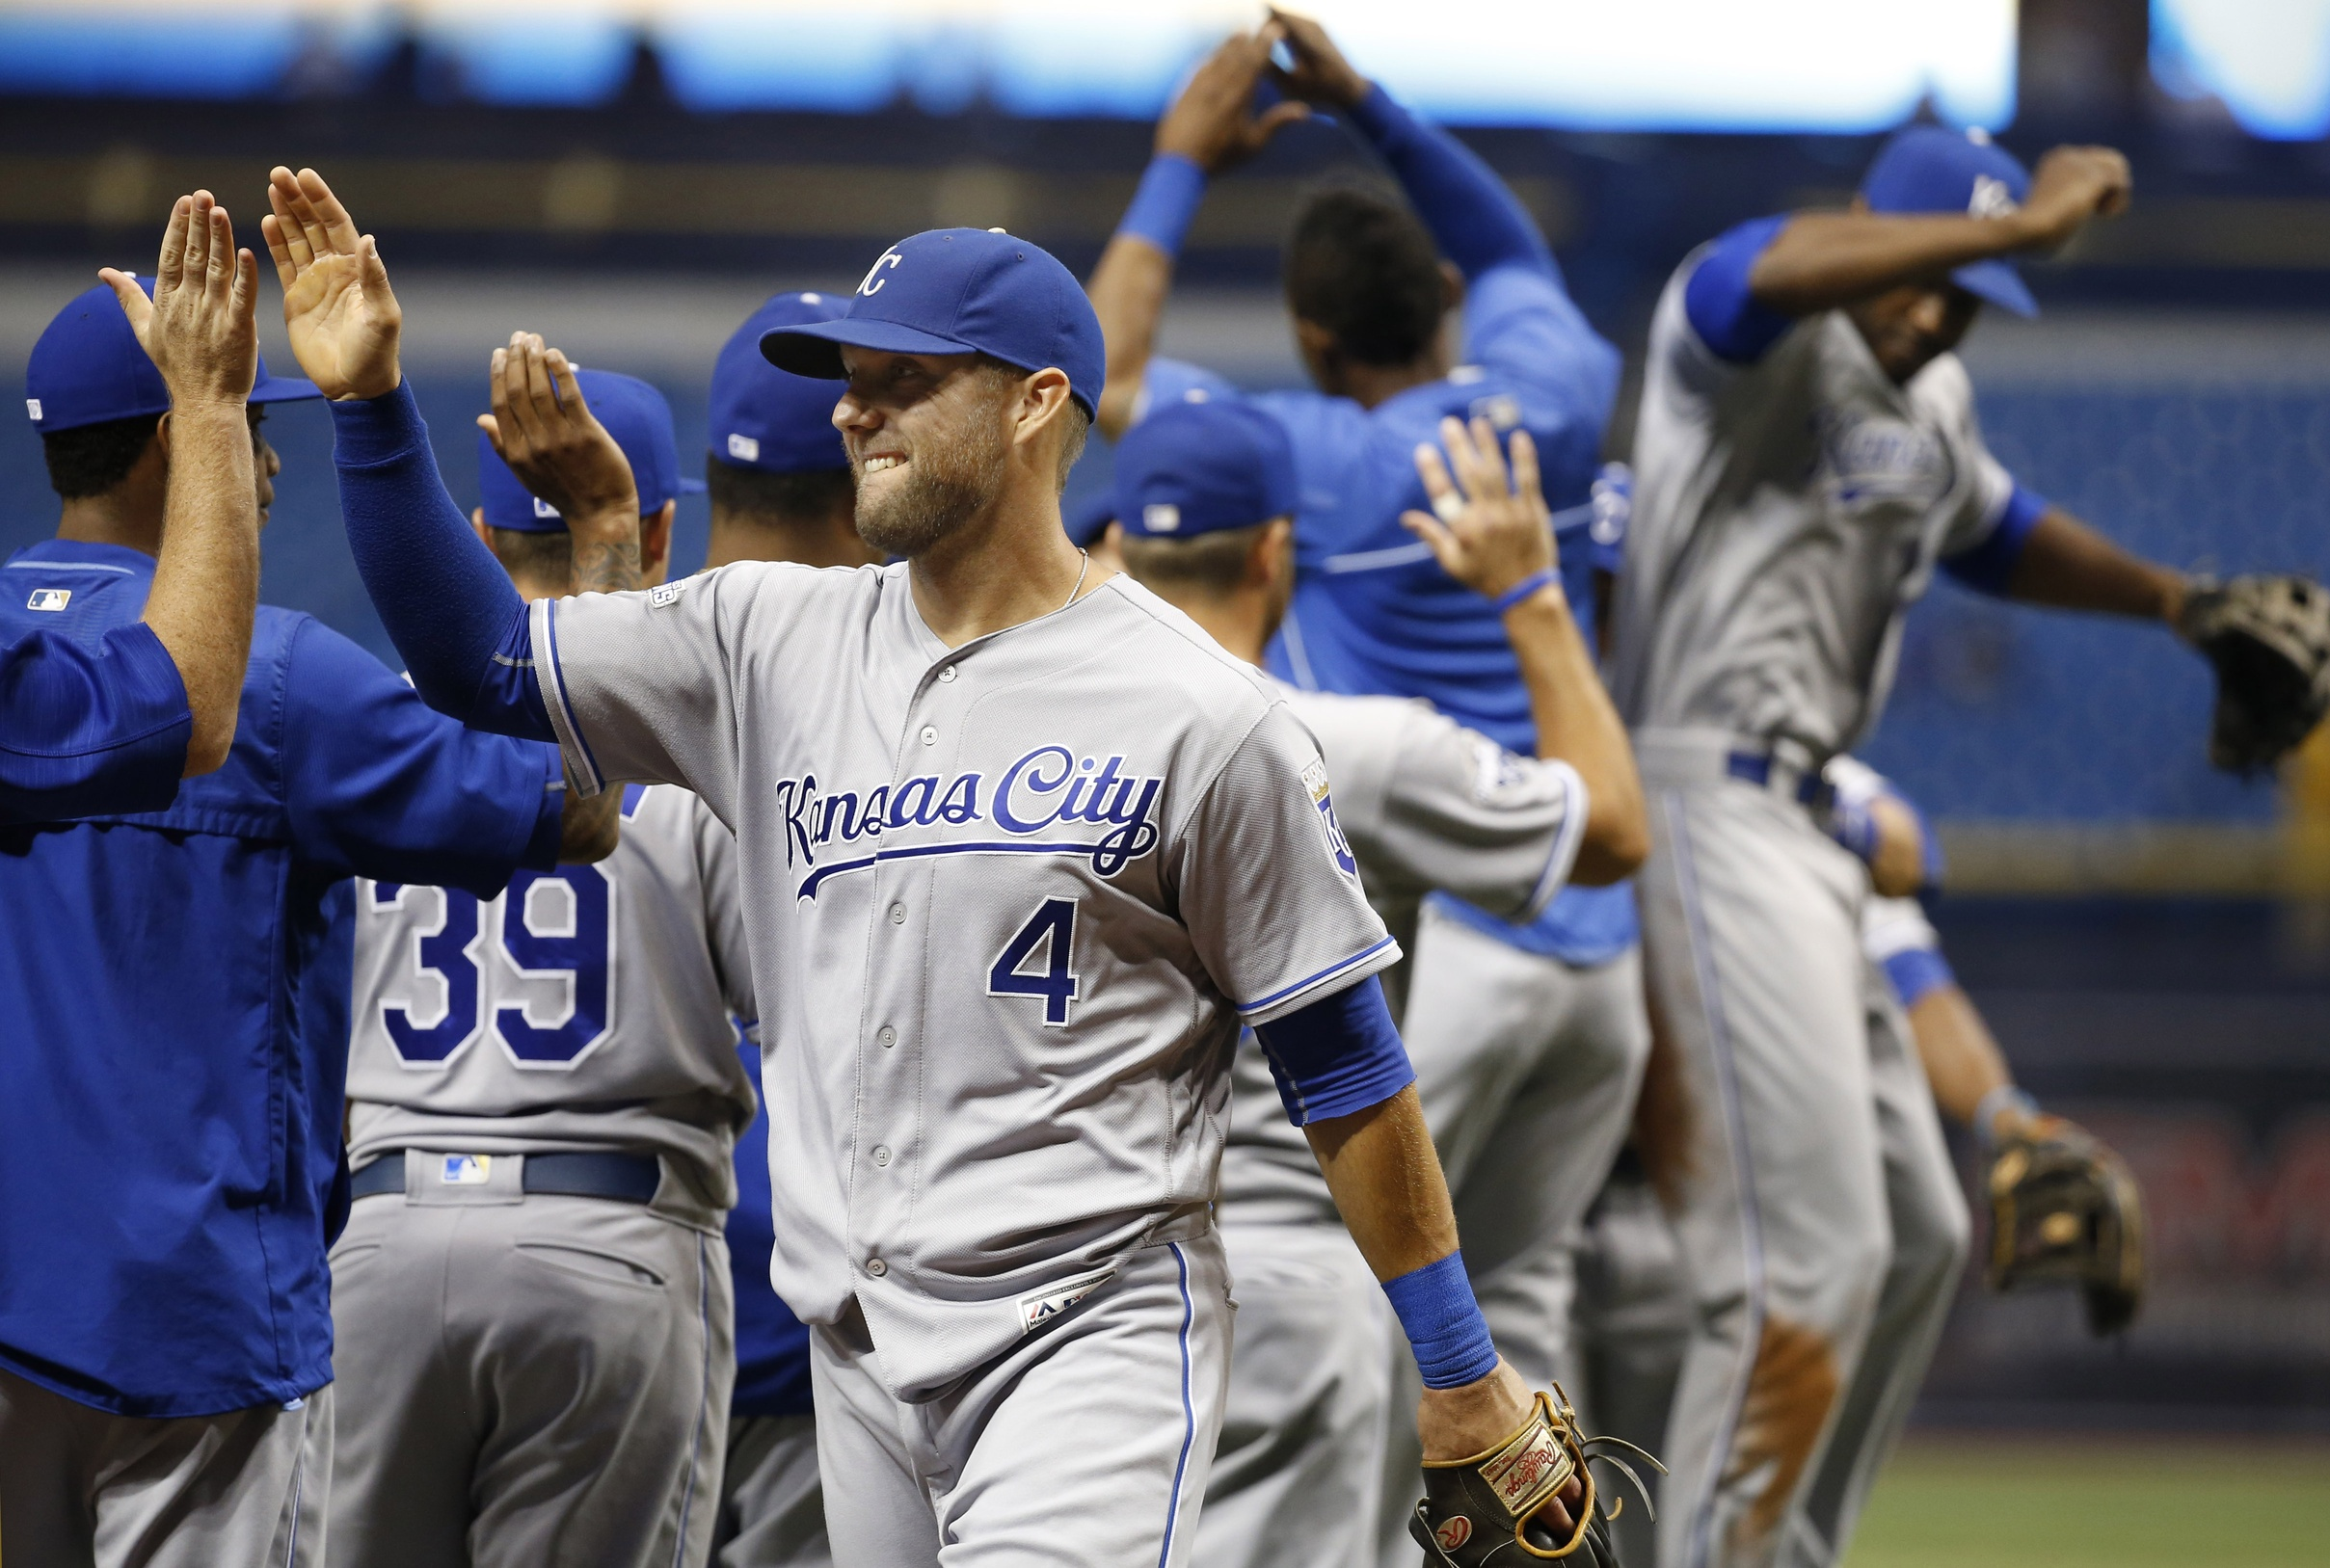 Royals Celebrate Victory